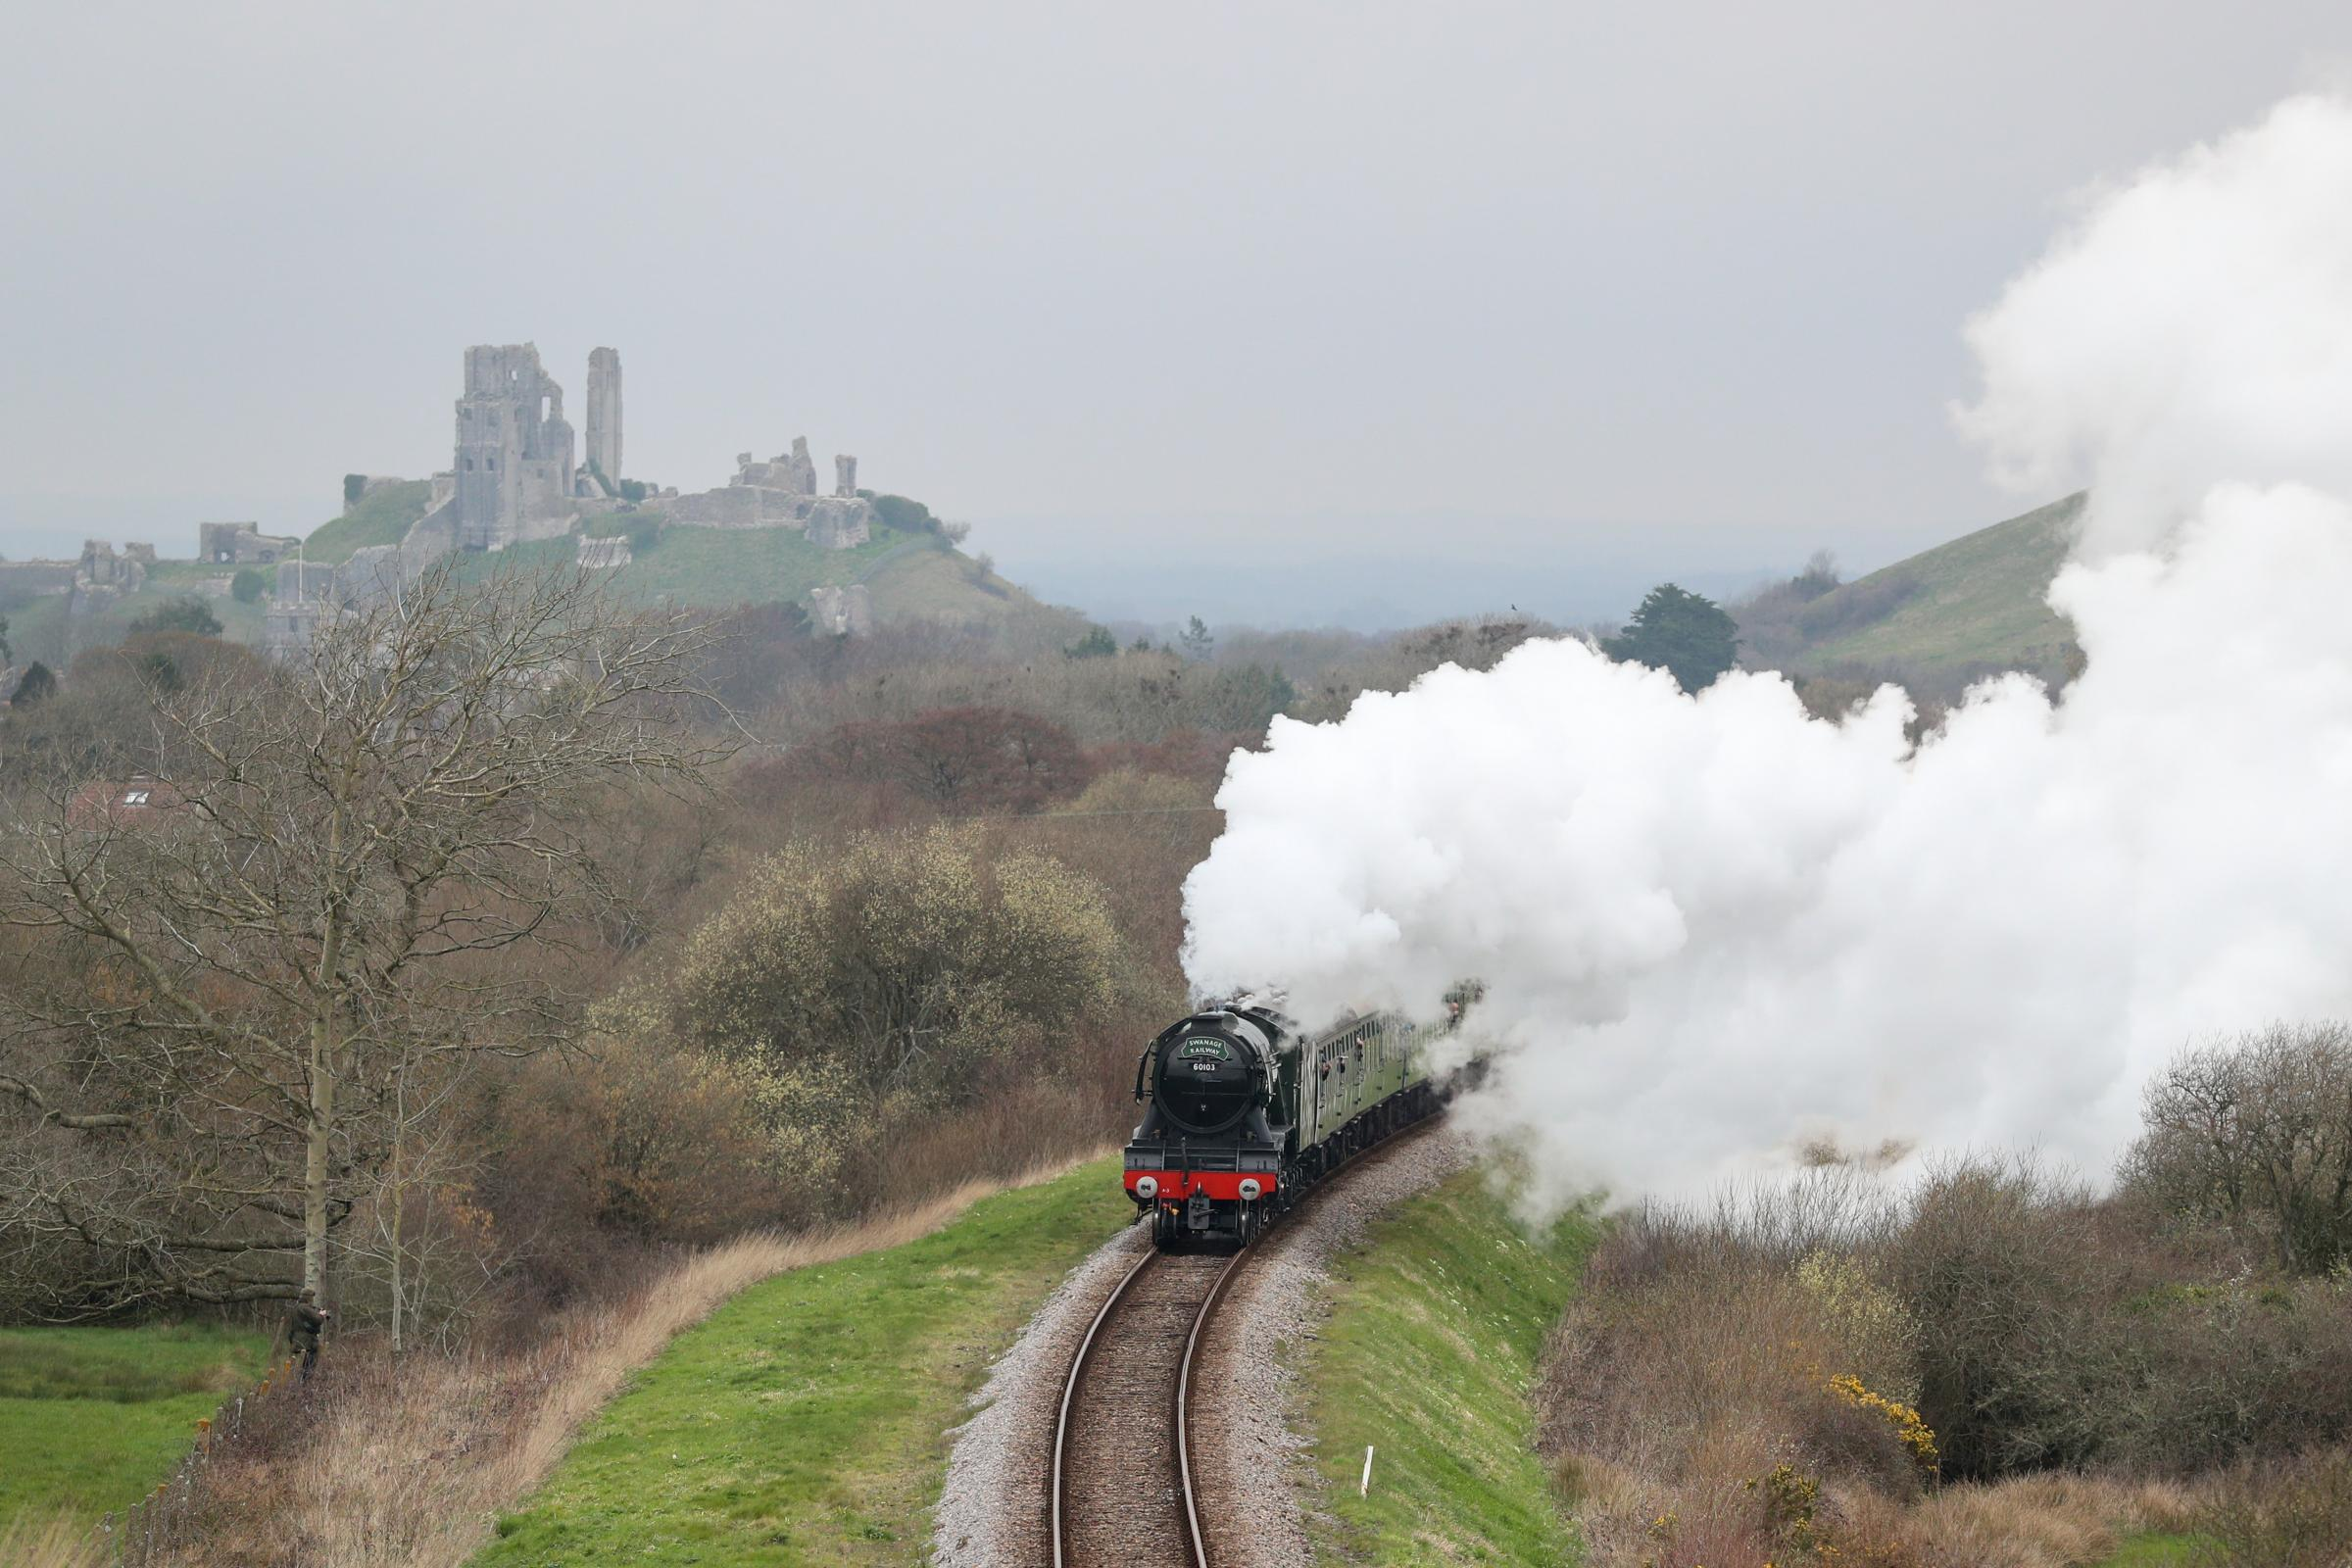 The Flying Scotsman during a visit to the Swanage Railway in Dorset